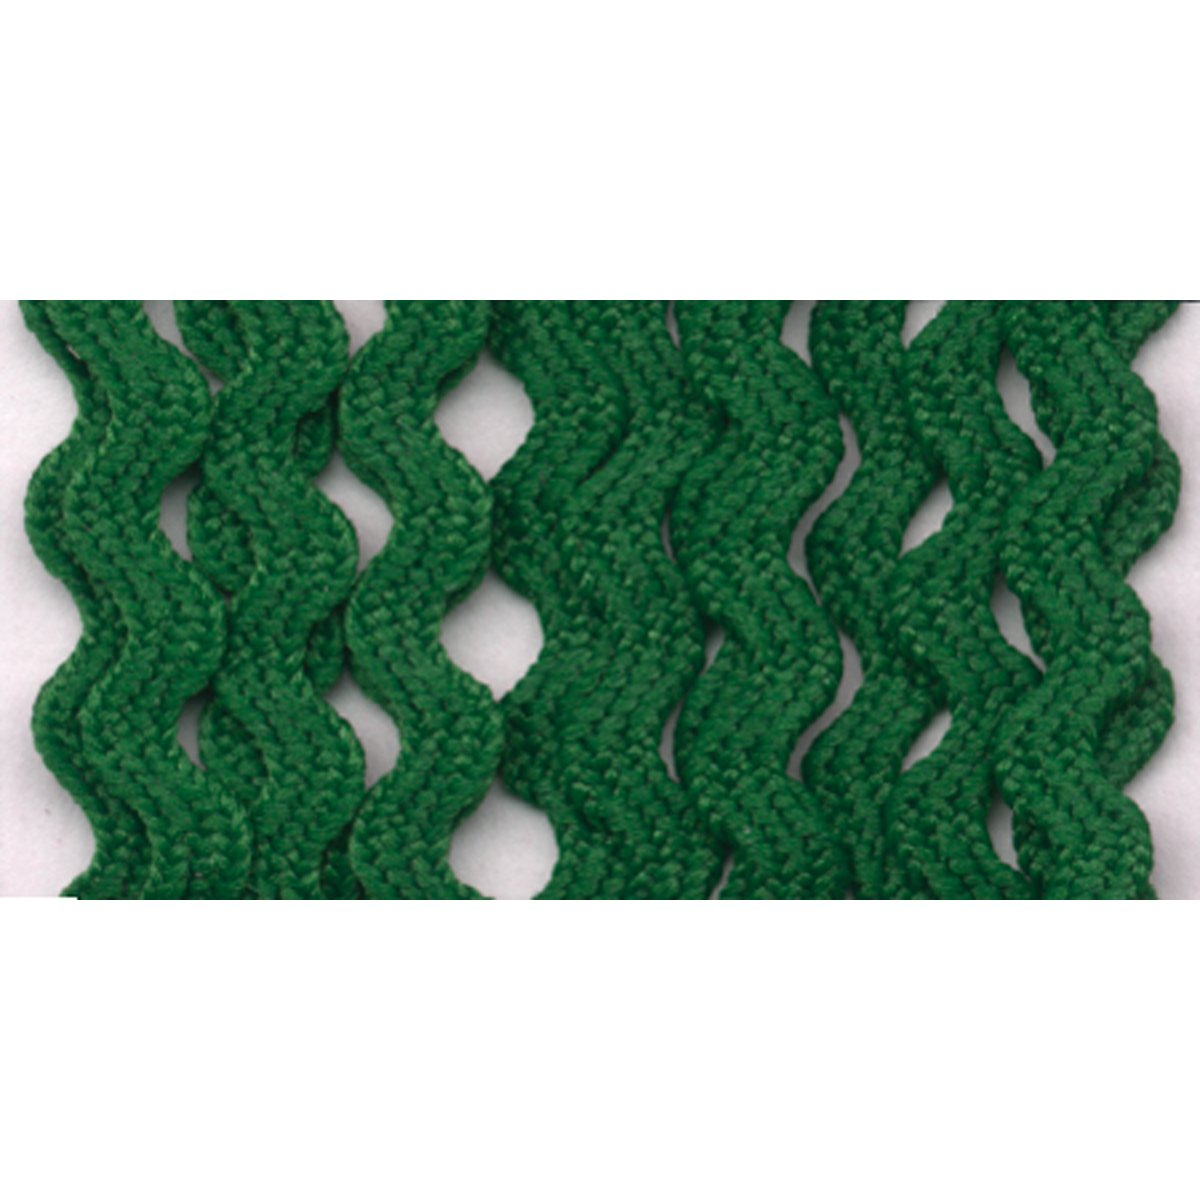 Wrights 117-400-044 Polyester Baby Rick Rack Utility Trim, Emerald, 4-Yard Notions - In Network